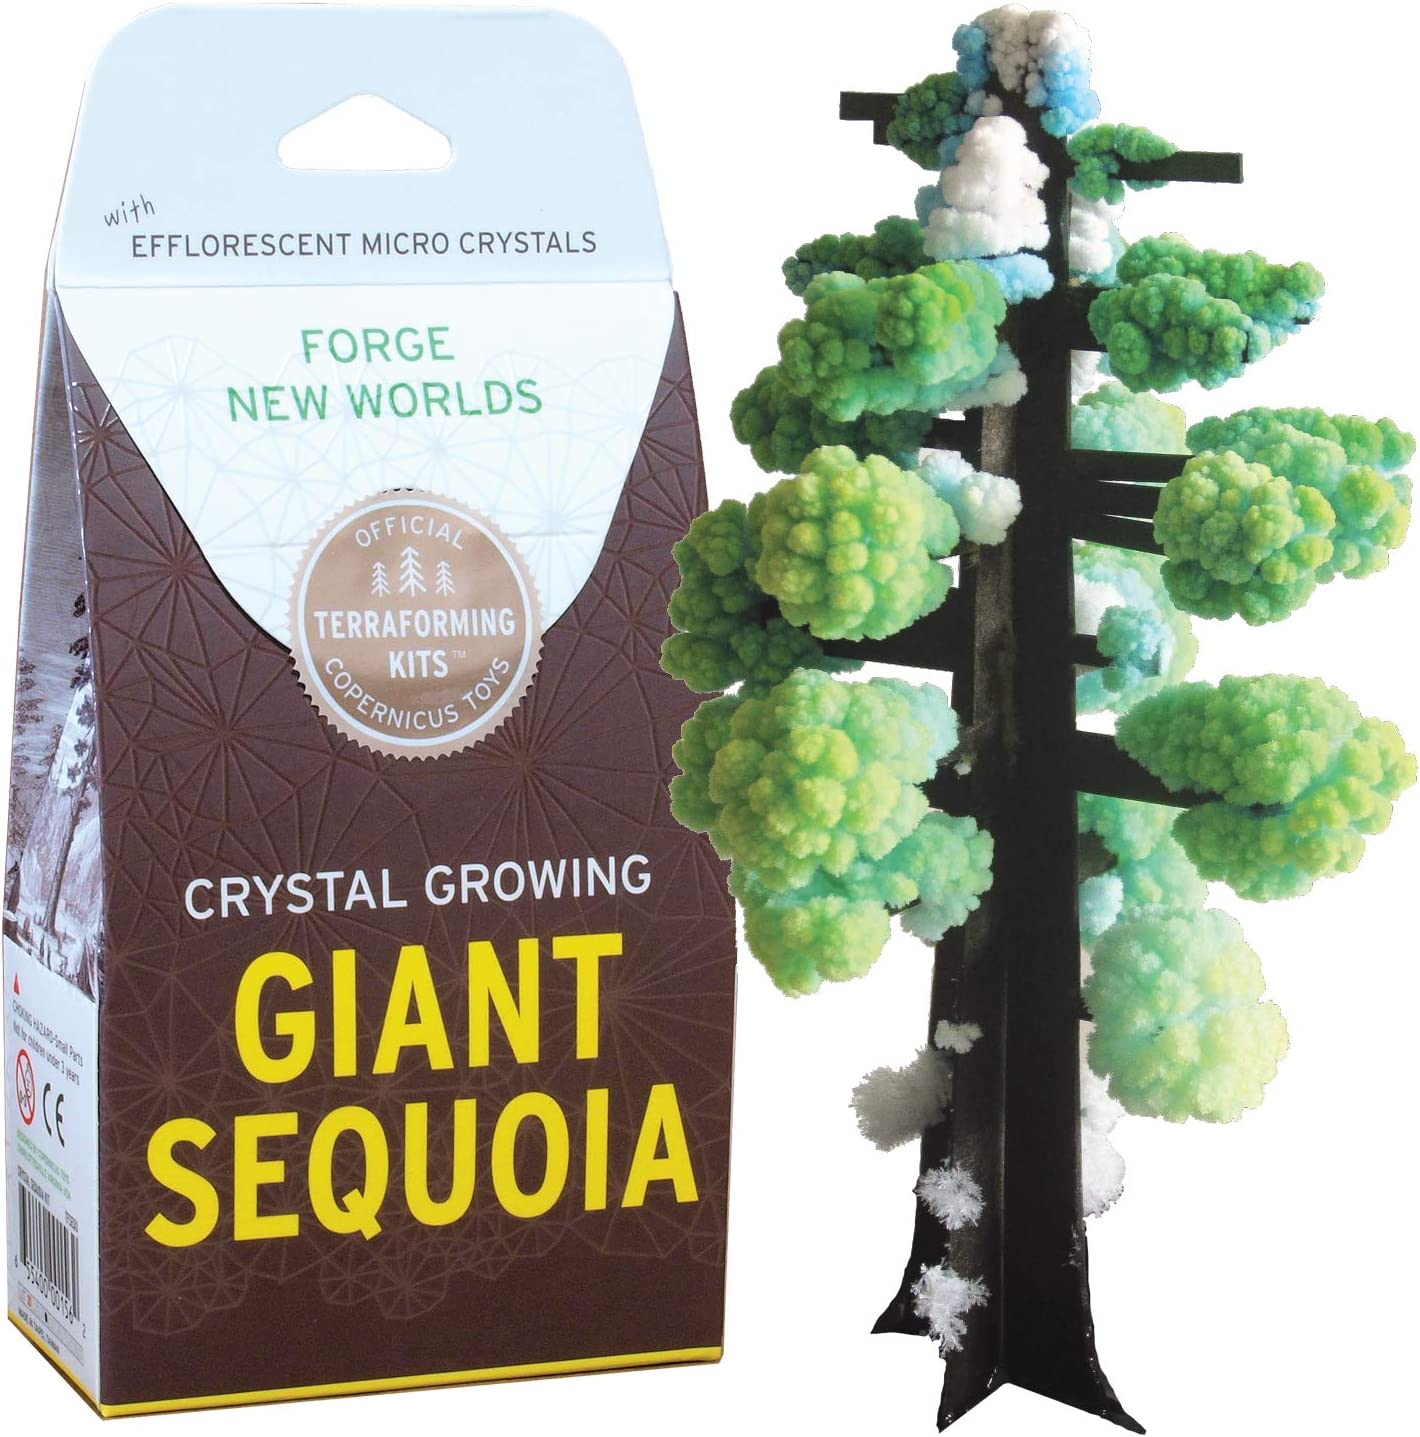 Crystal Growing Giant Sequoia | Copernicus Toys Official Terraformer kit | Grows in Hours | Facts and Instructions